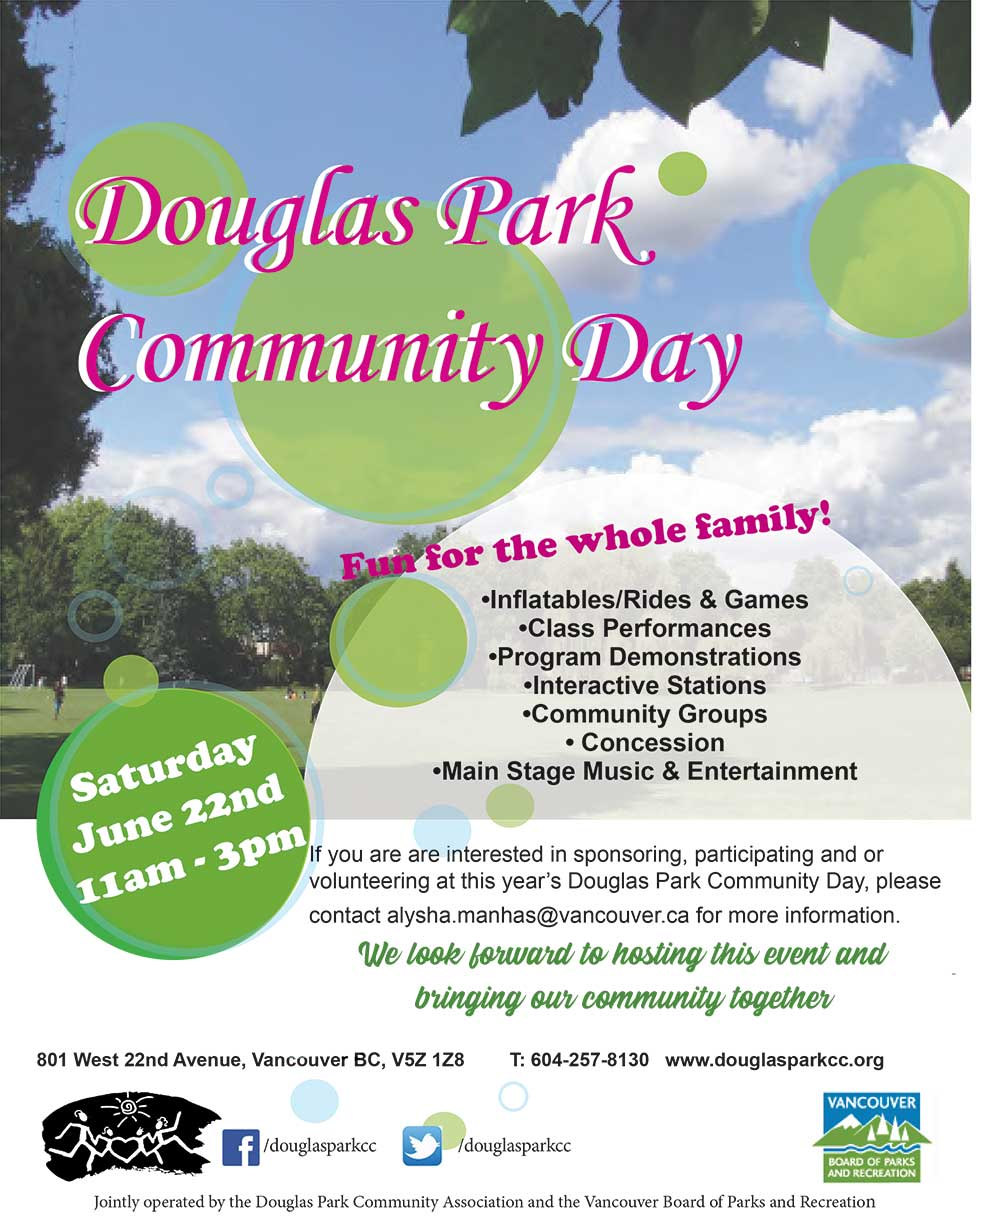 Douglas Park Community Day 2019 Fun for the whole family! Saturday June 22, 11am-3pm -Inflatables/Rides & Games -Class Performances -Program Demonstrations -Interactive Stations -Community Groups -Concession -Main Stage Music & Entertainment If your interested in sponsoring, participating or volunteering at this years Douglas Park Community Day, please contact alysha.manhas@vancouver.ca for more information We look forward to hosting this event and bringing our community together.